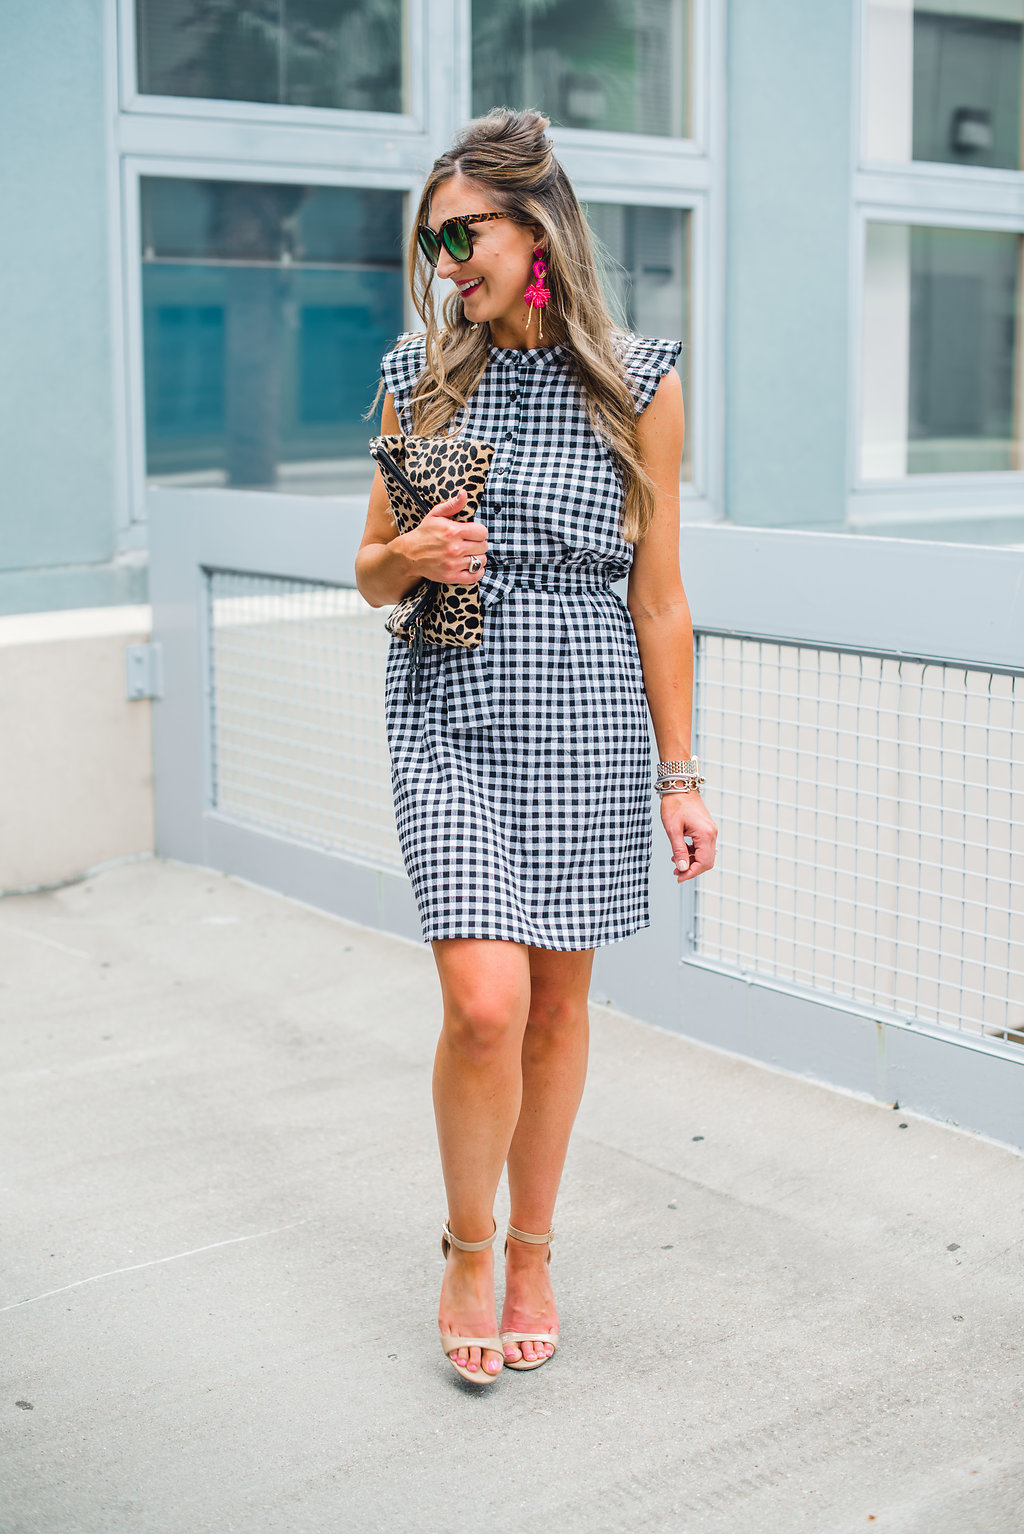 Gingham dress for Summer - Gibson X Hi Sugarplum! at NORDSTROM featured by Texas fashion blogger, Style Your Senses - Gibson X Hi Sugarplum! at NORDSTROM featured by Texas fashion blogger, Style Your Senses